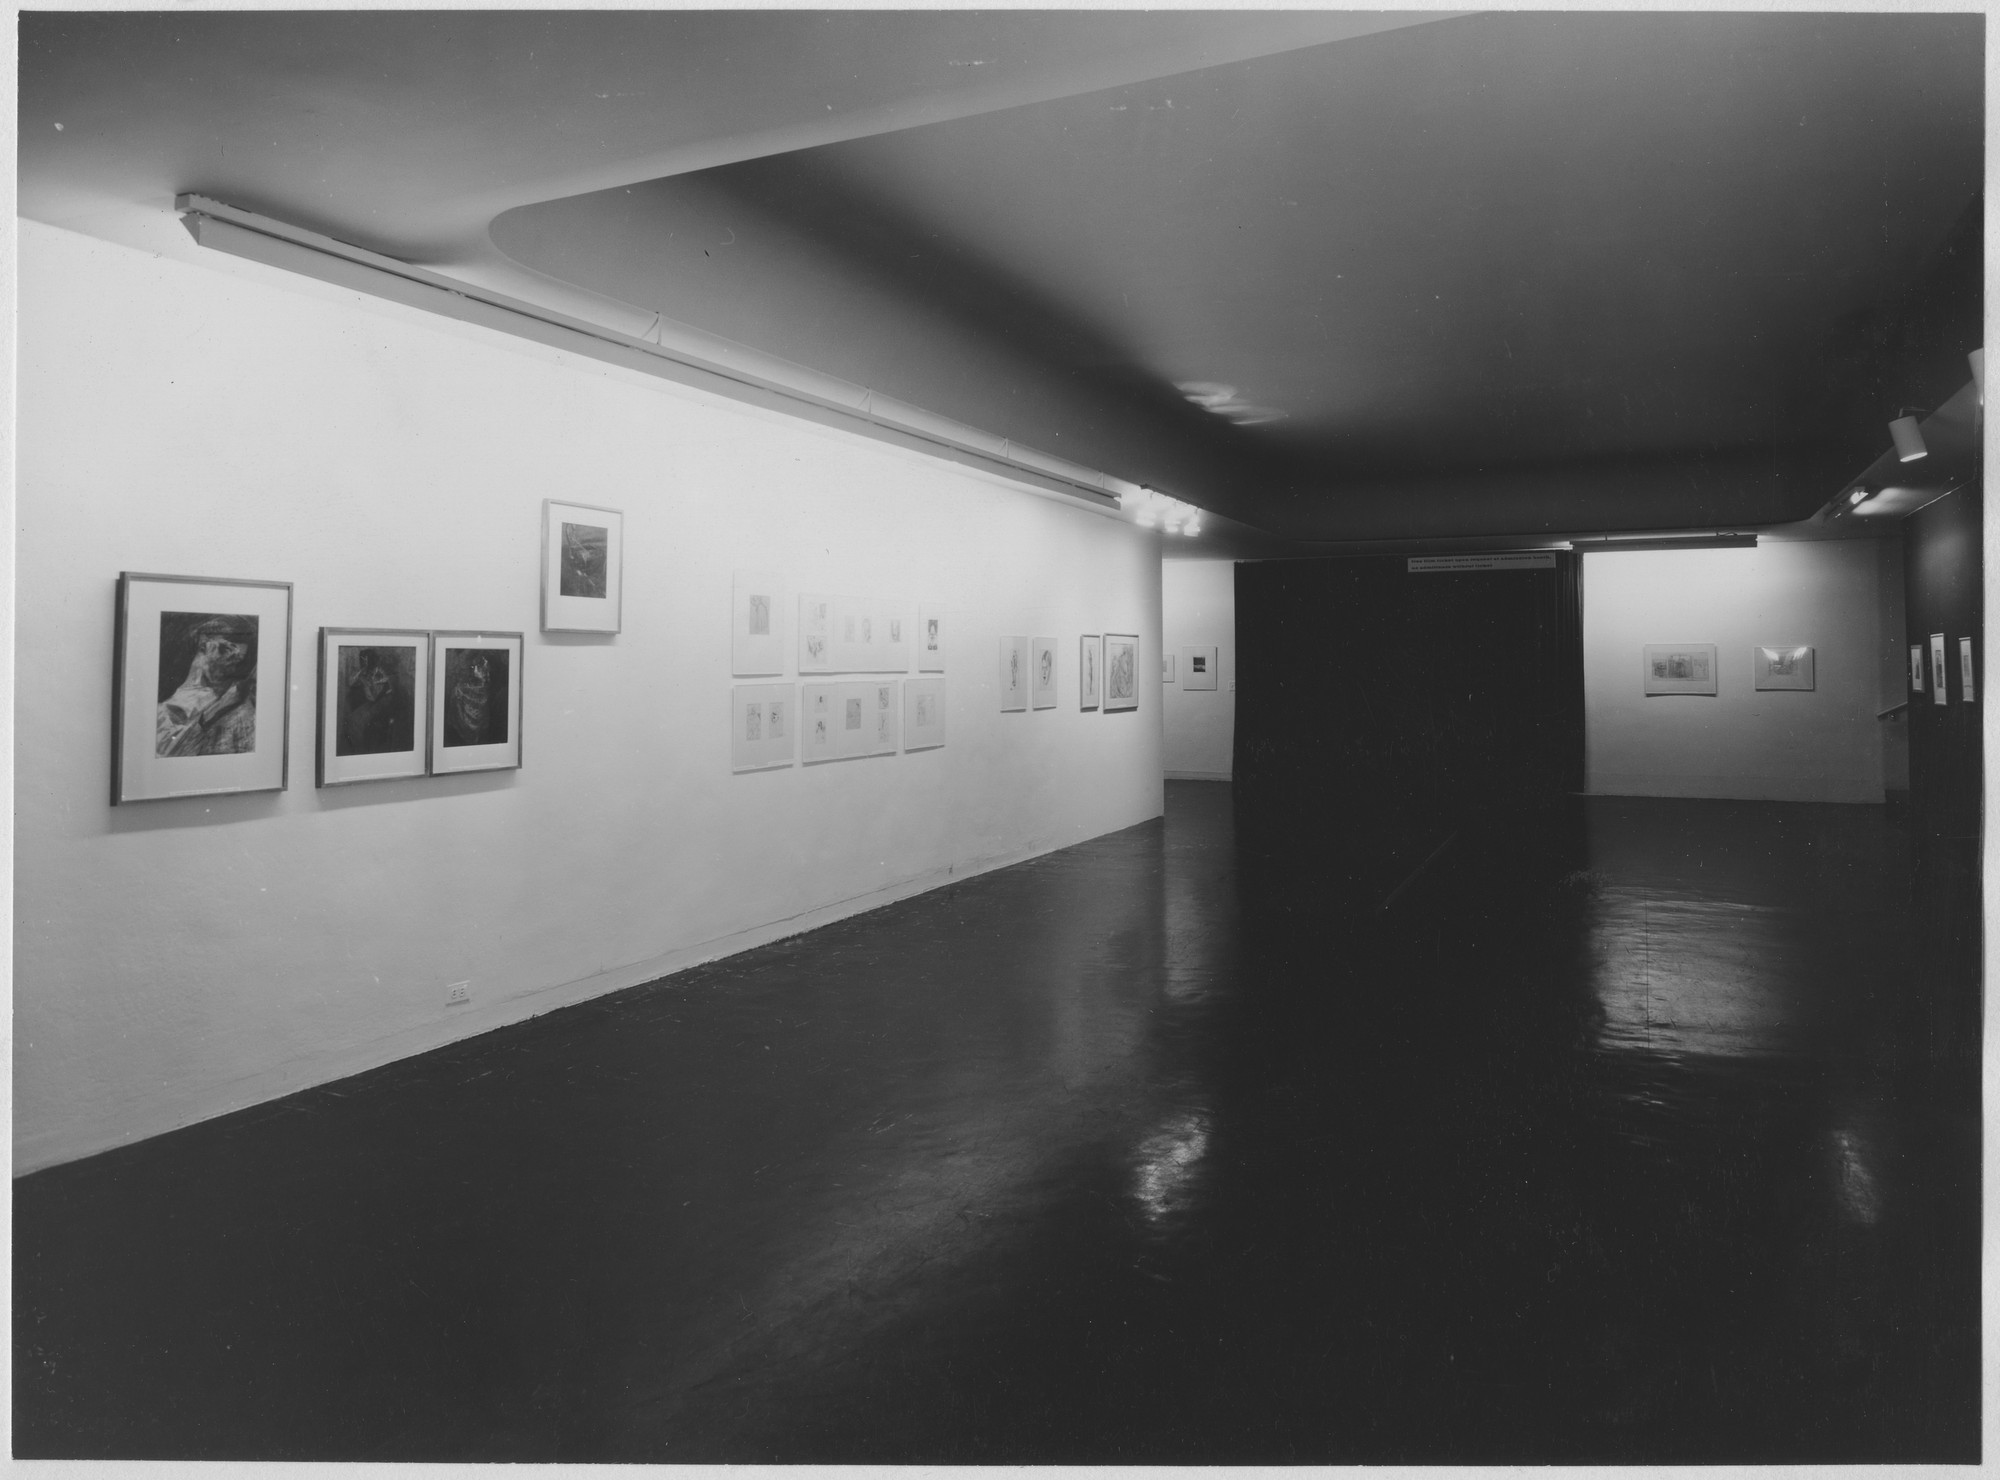 "Installation view of the exhibition, ""Umberto Boccioni:  Drawings and Etchings from the Collection of Mr. and Mrs. Harry Lewis Winston."" May 30, 1961–August 6, 1961. Photographic Archive. The Museum of Modern Art Archives, New York. IN686.1. Photograph by Soichi Sunami."